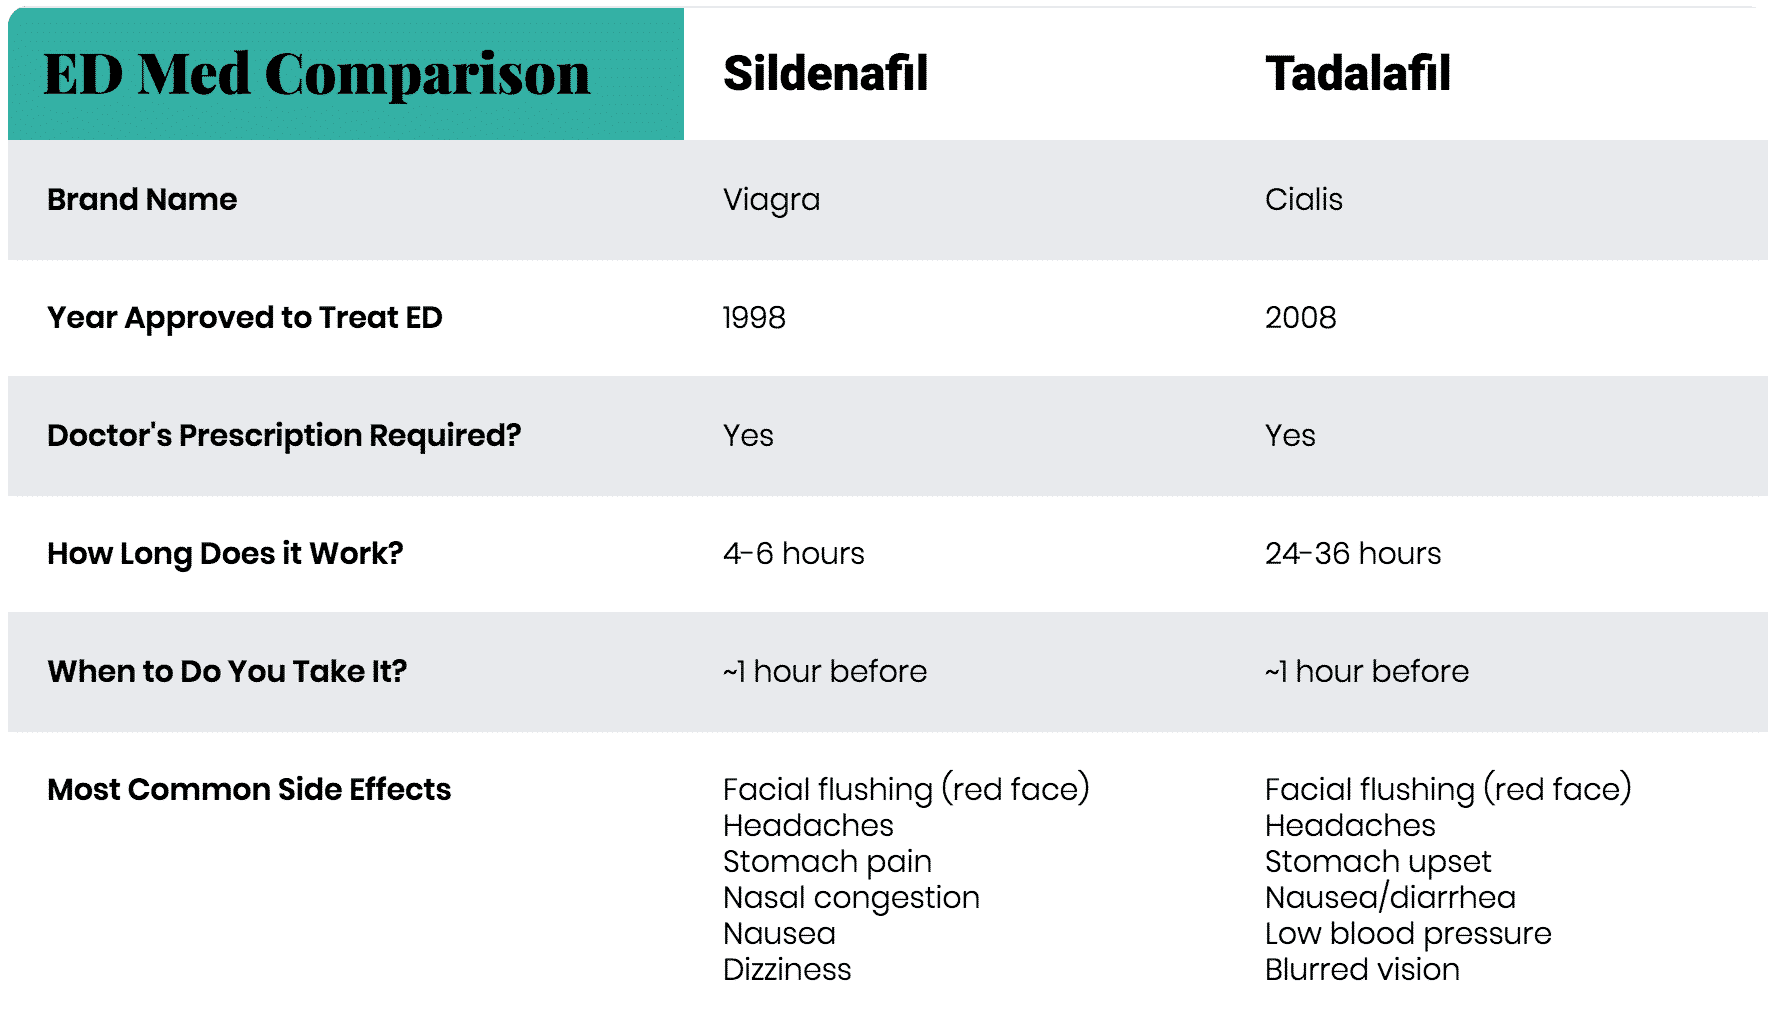 Sildenafil vs Tadalafil Tablets: ED Med Comparison